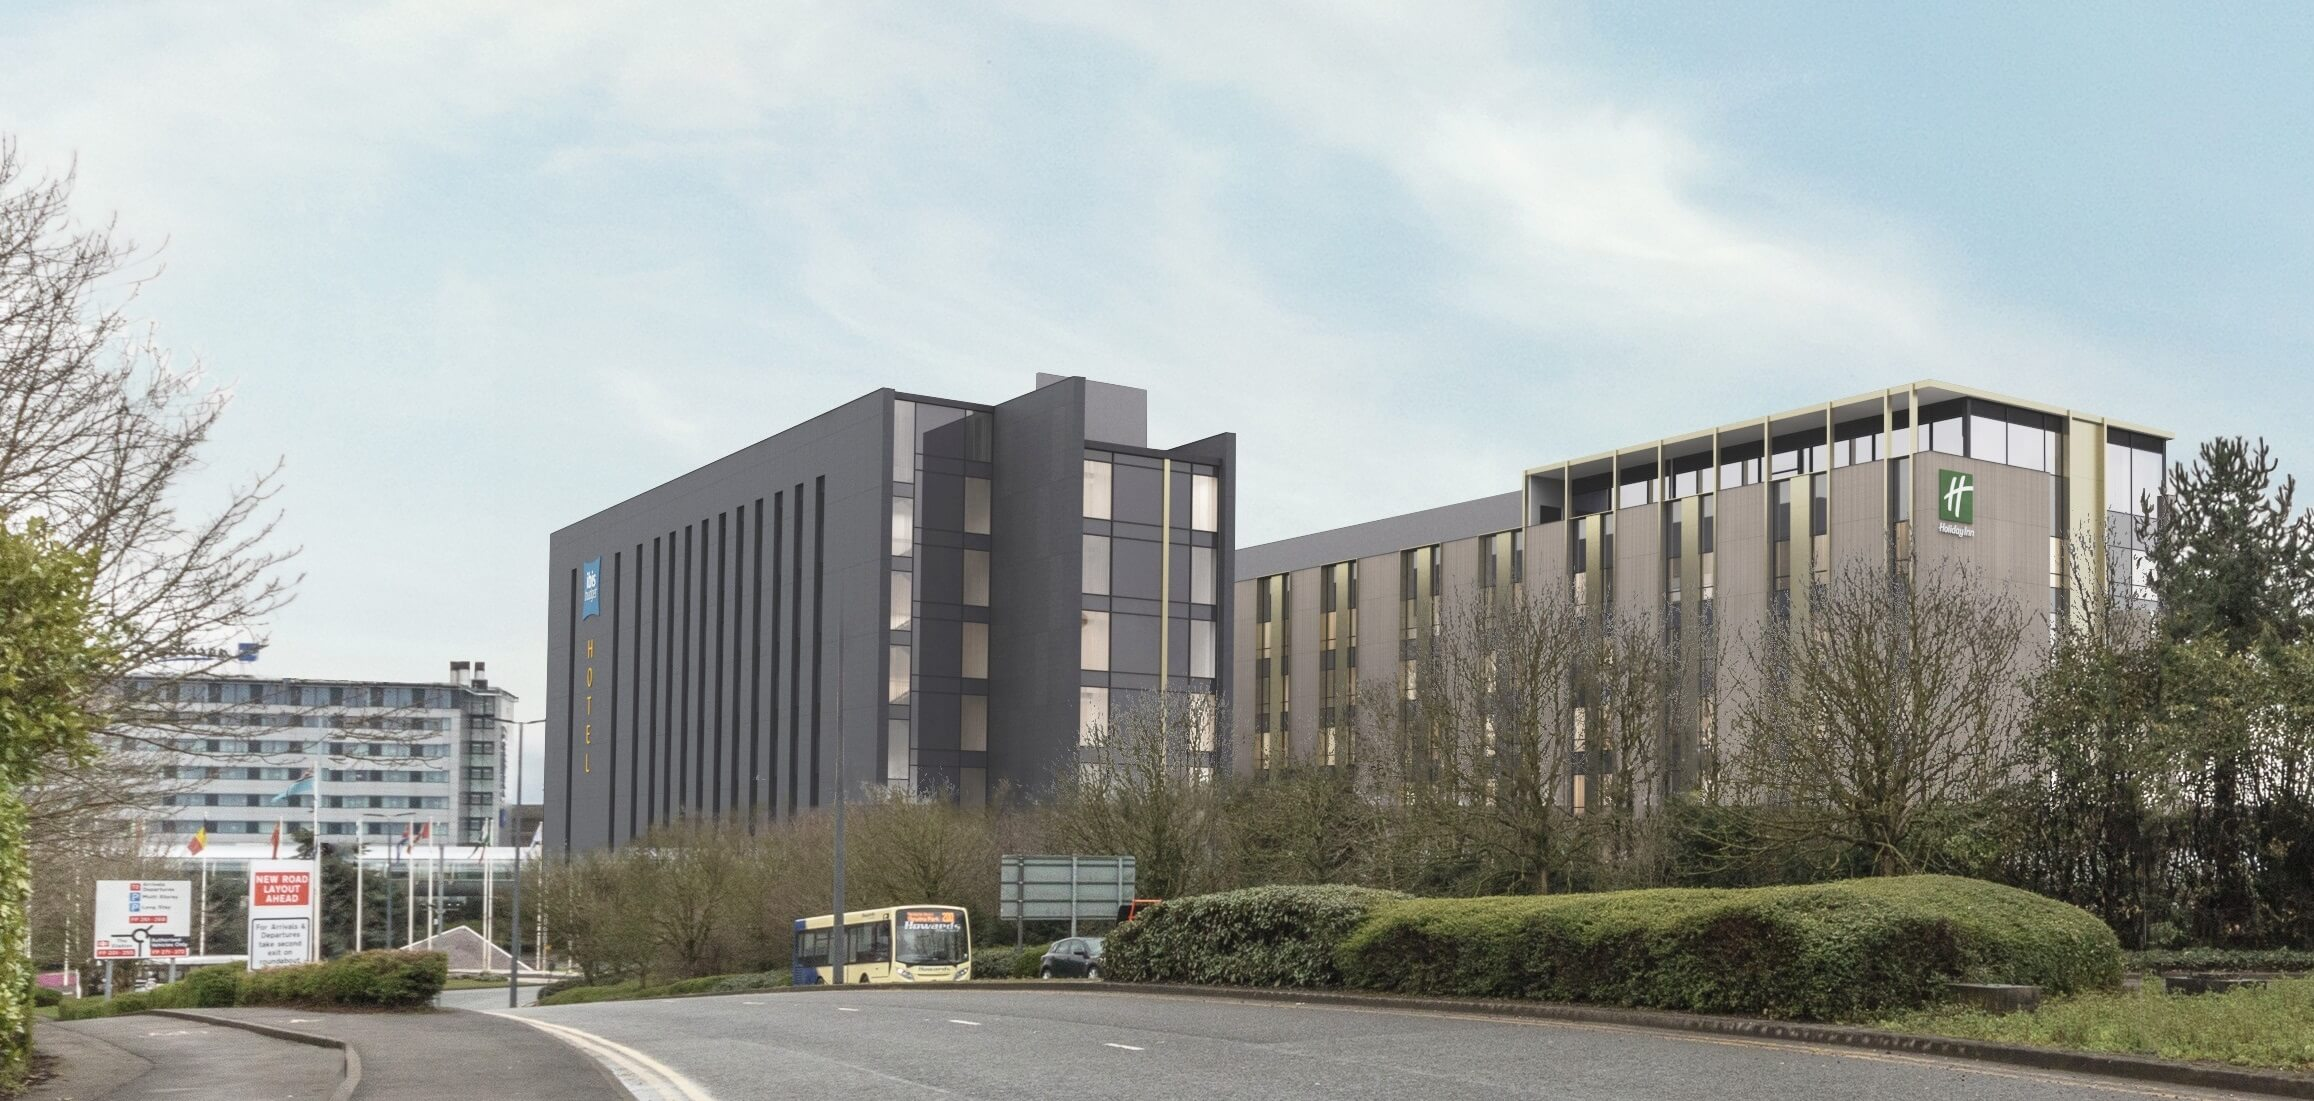 Planning Approval For New 280 Bed Holiday Inn And 262 Bed Ibis